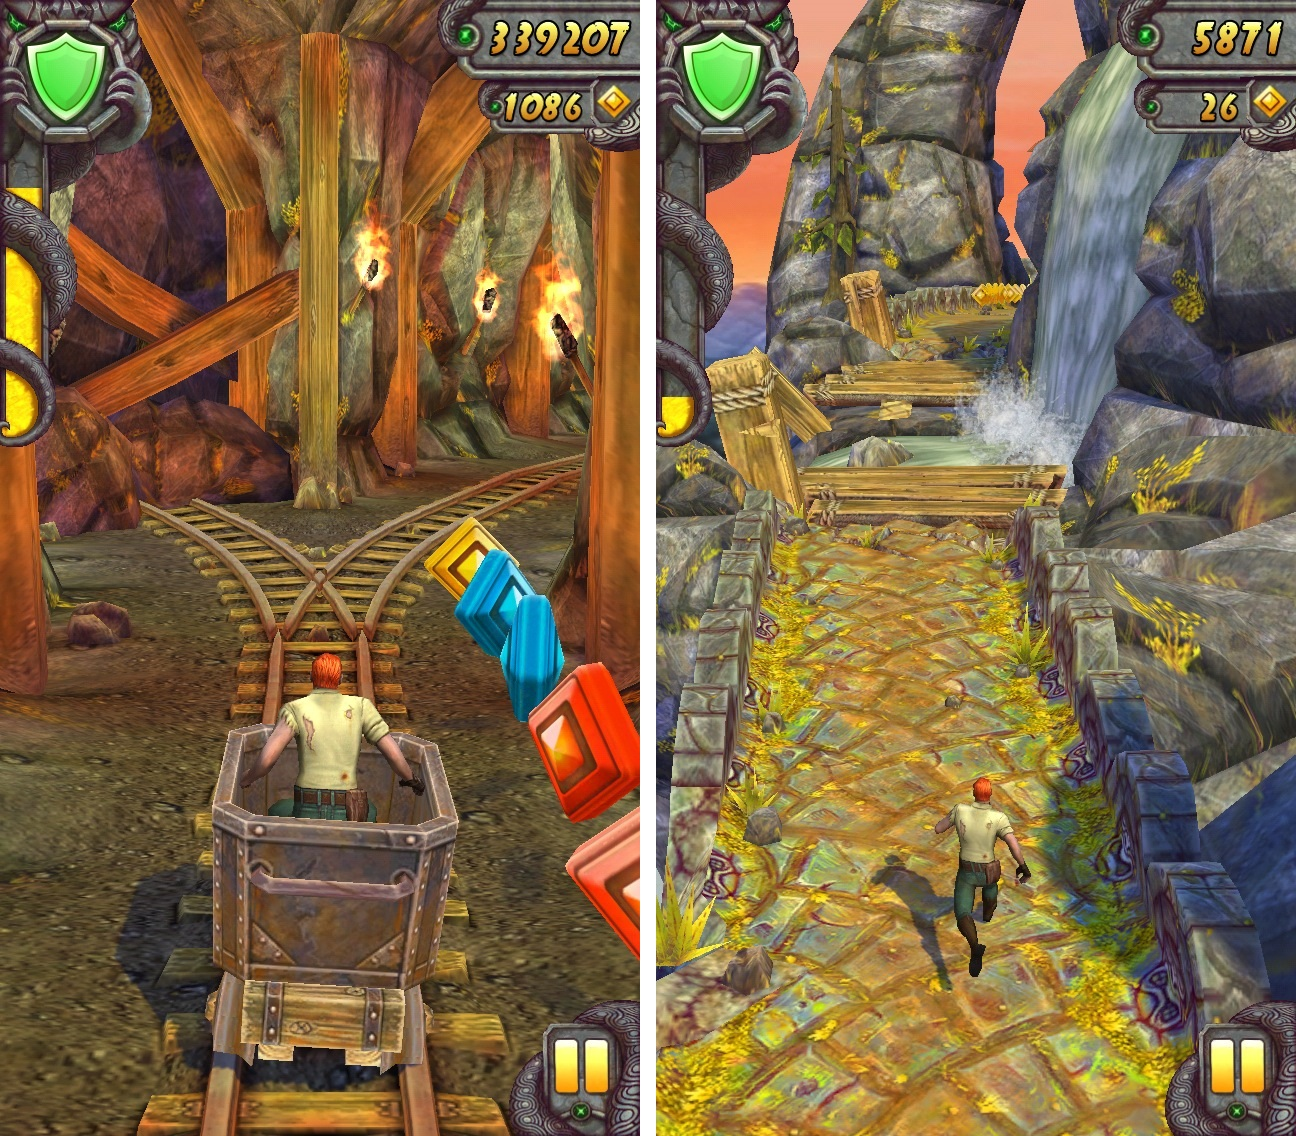 download temple run 2 for my android phone